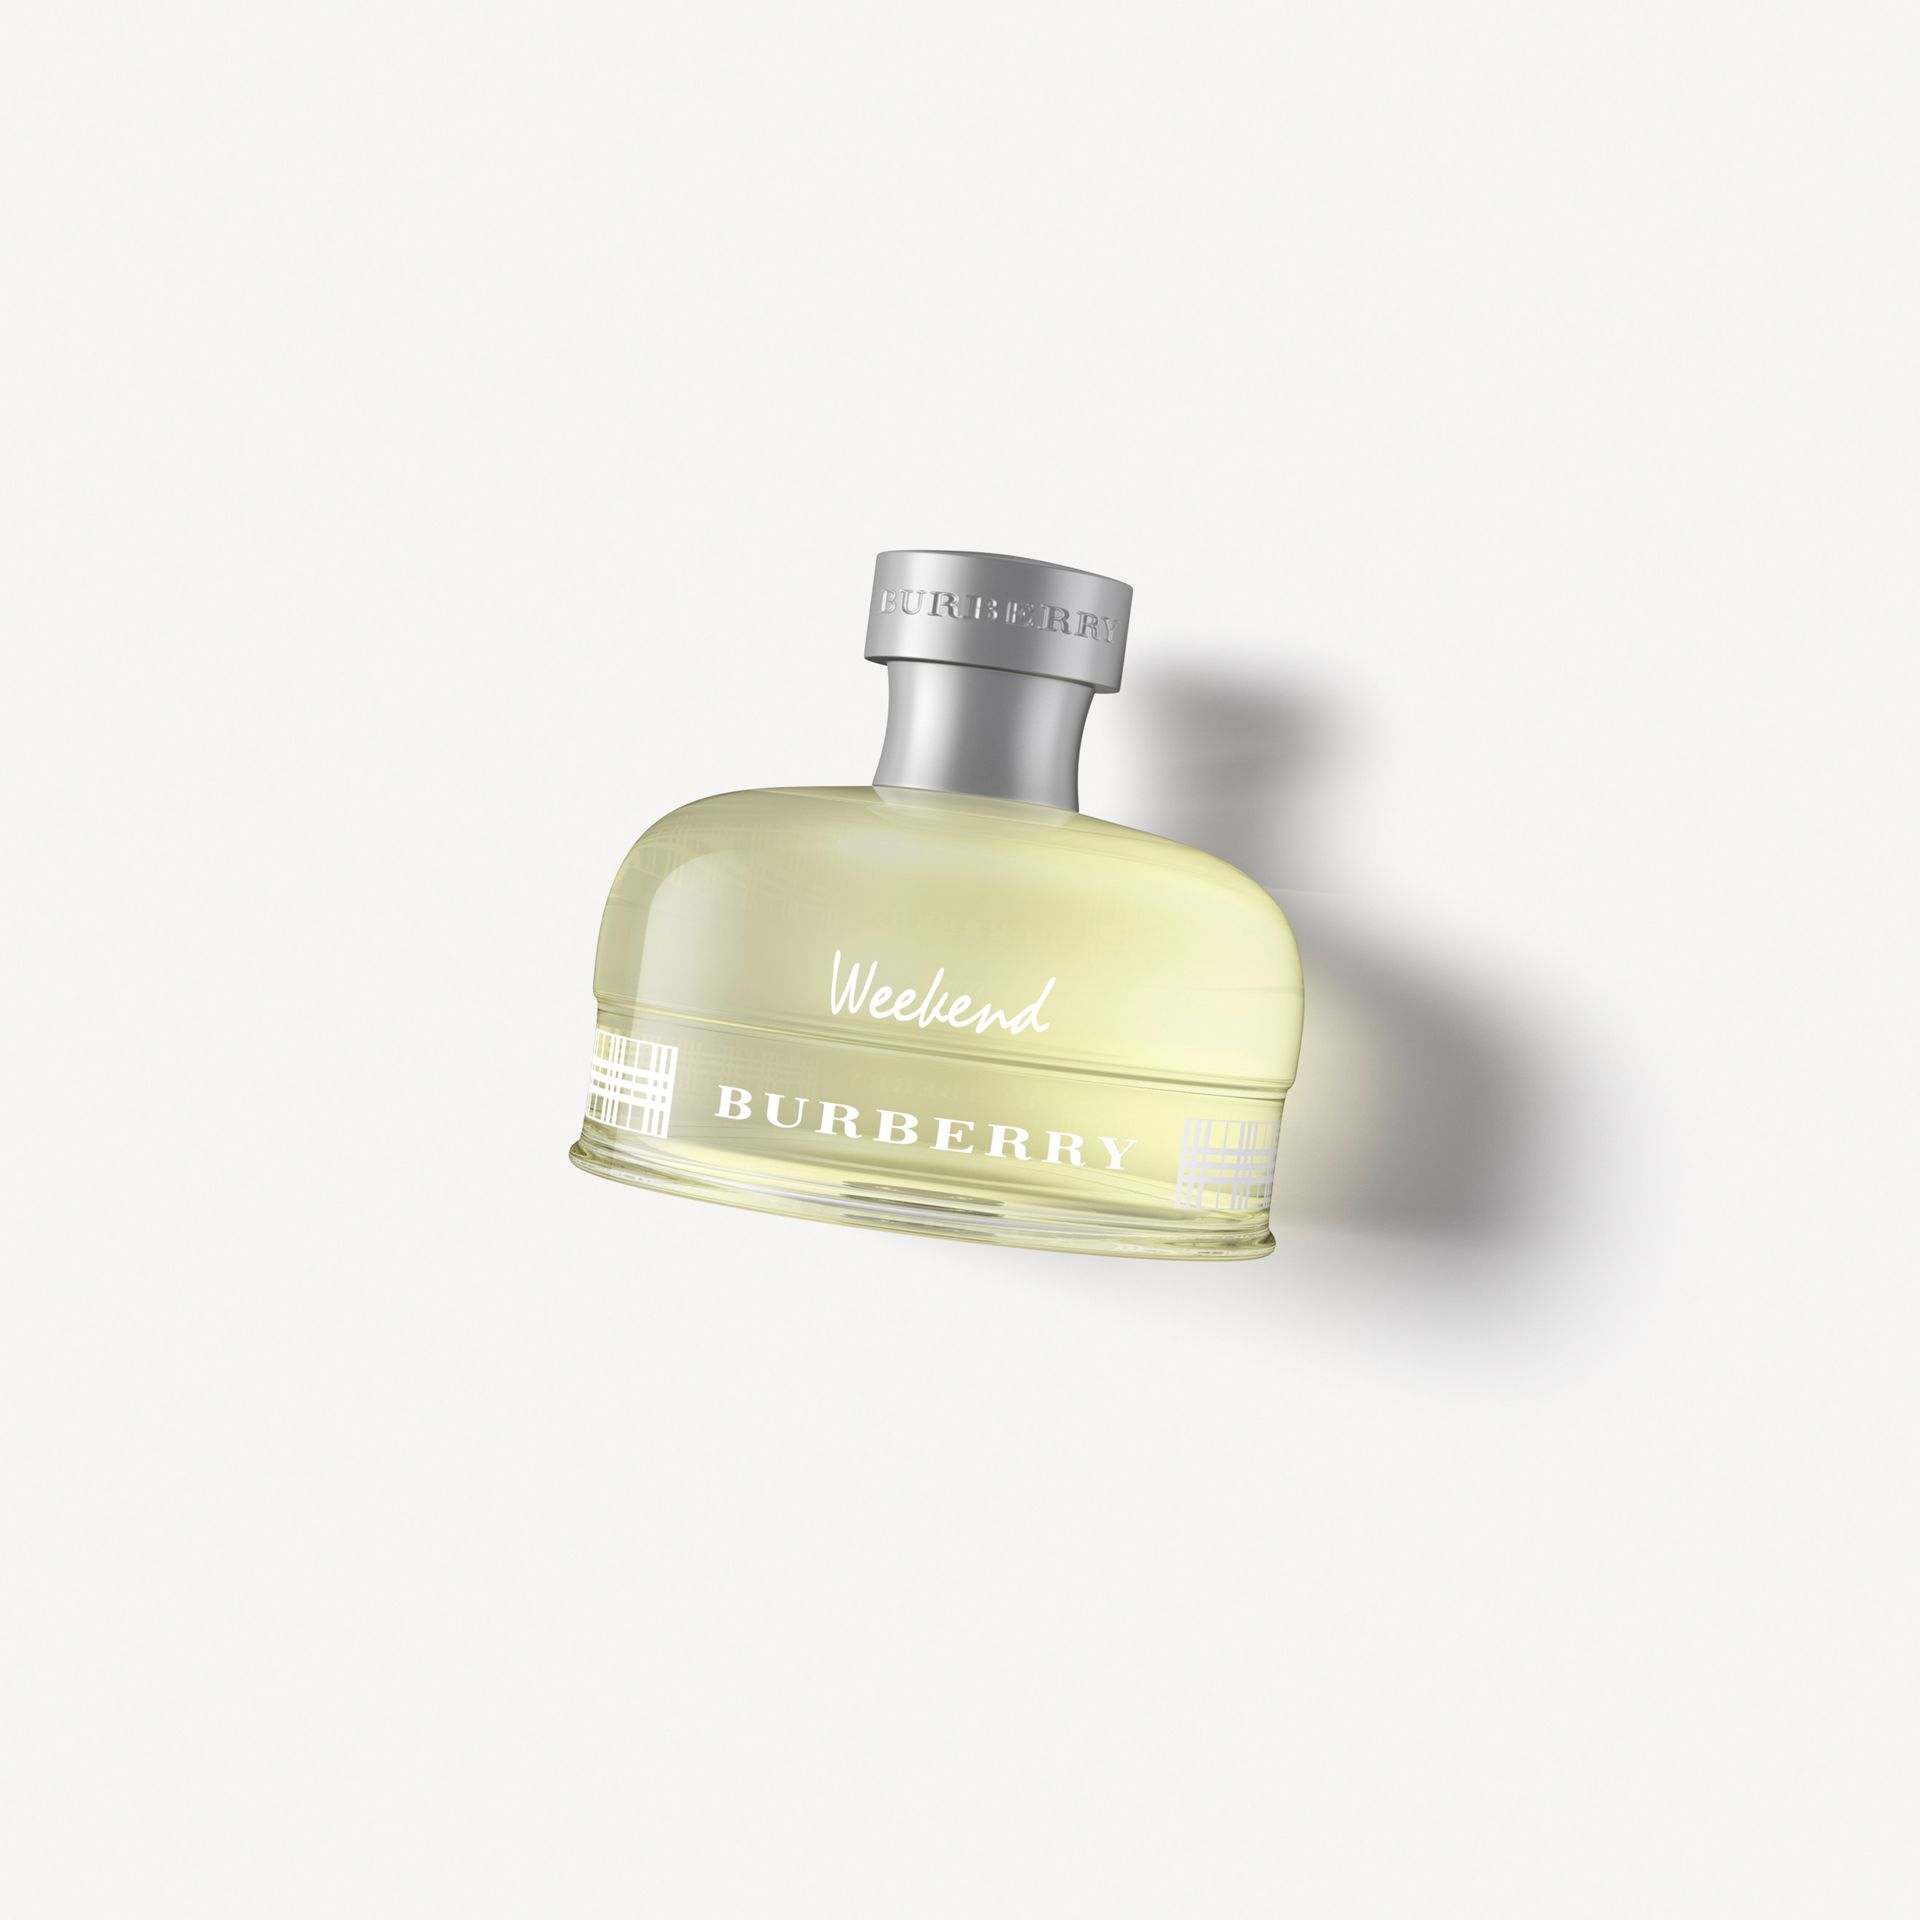 Eau de Parfum Burberry Weekend 100 ml - photo de la galerie 1